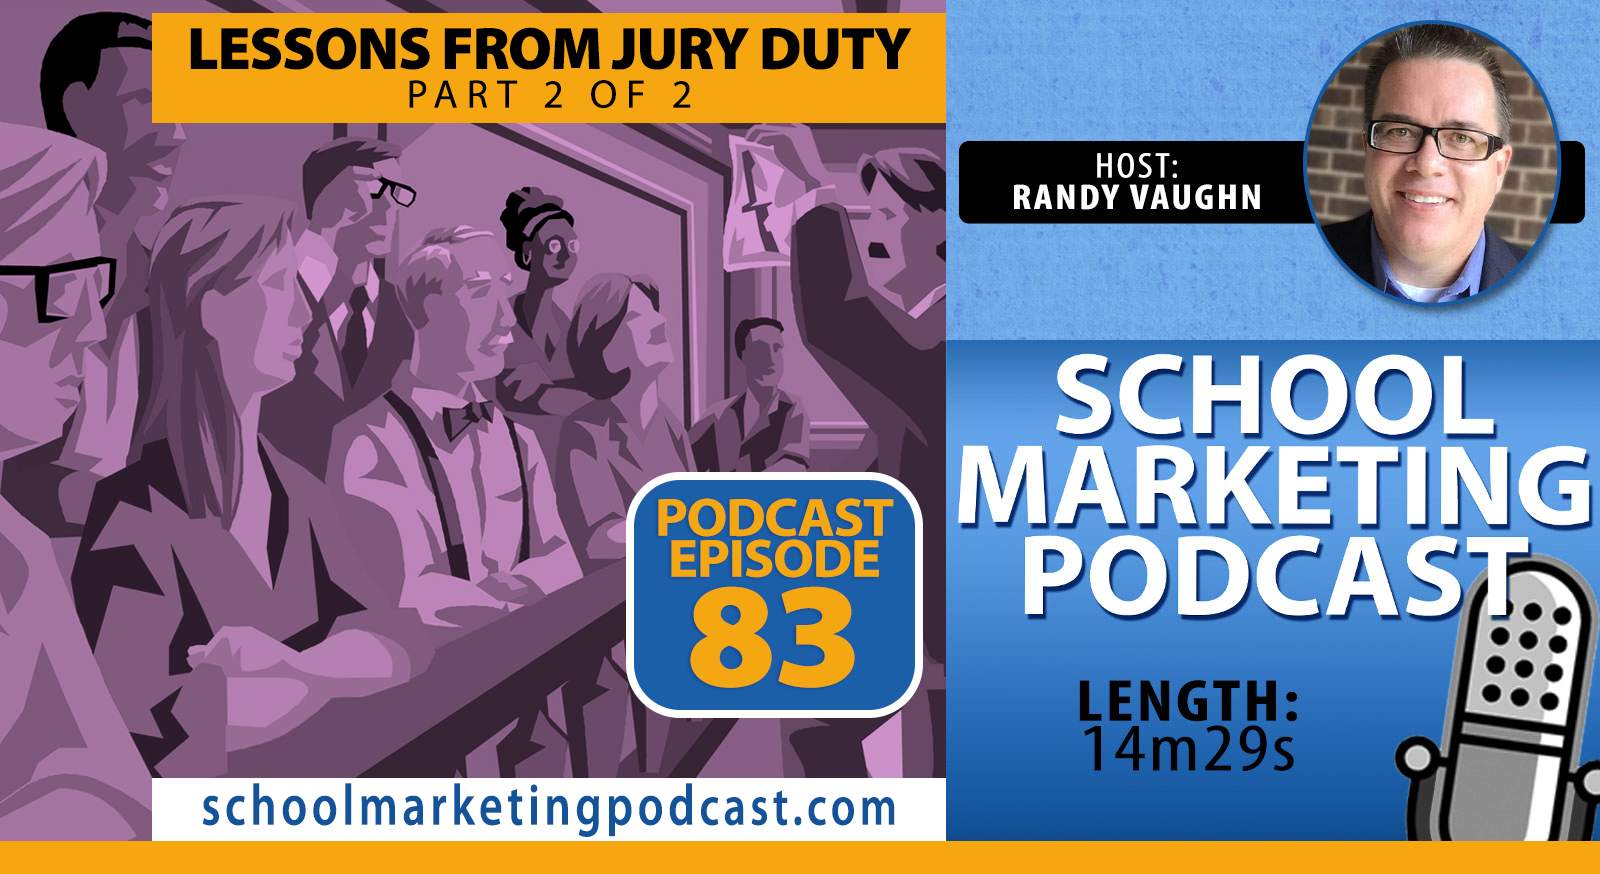 Lessons from Jury Duty: Evidence is Essential - Part 2 of 2 (School Marketing Podcast #83)